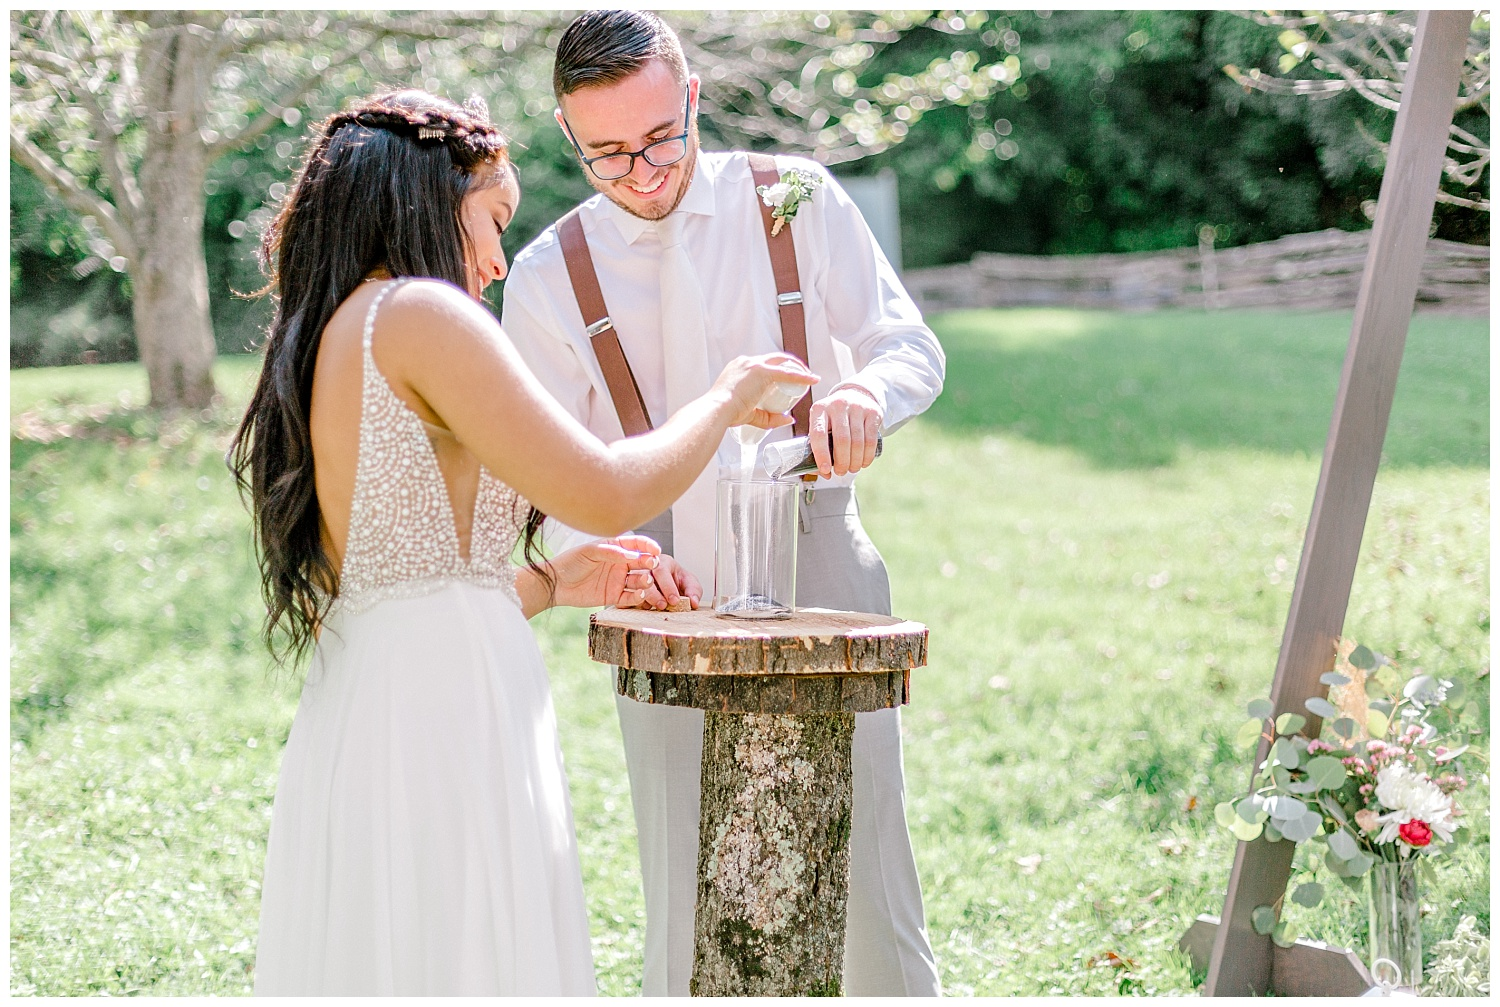 Olive green and white rustic barn wedding at burnside plantation in bethlehem pennsylvania by PA based destination wedding and lifestyle photographer Lytle photography (48).jpg